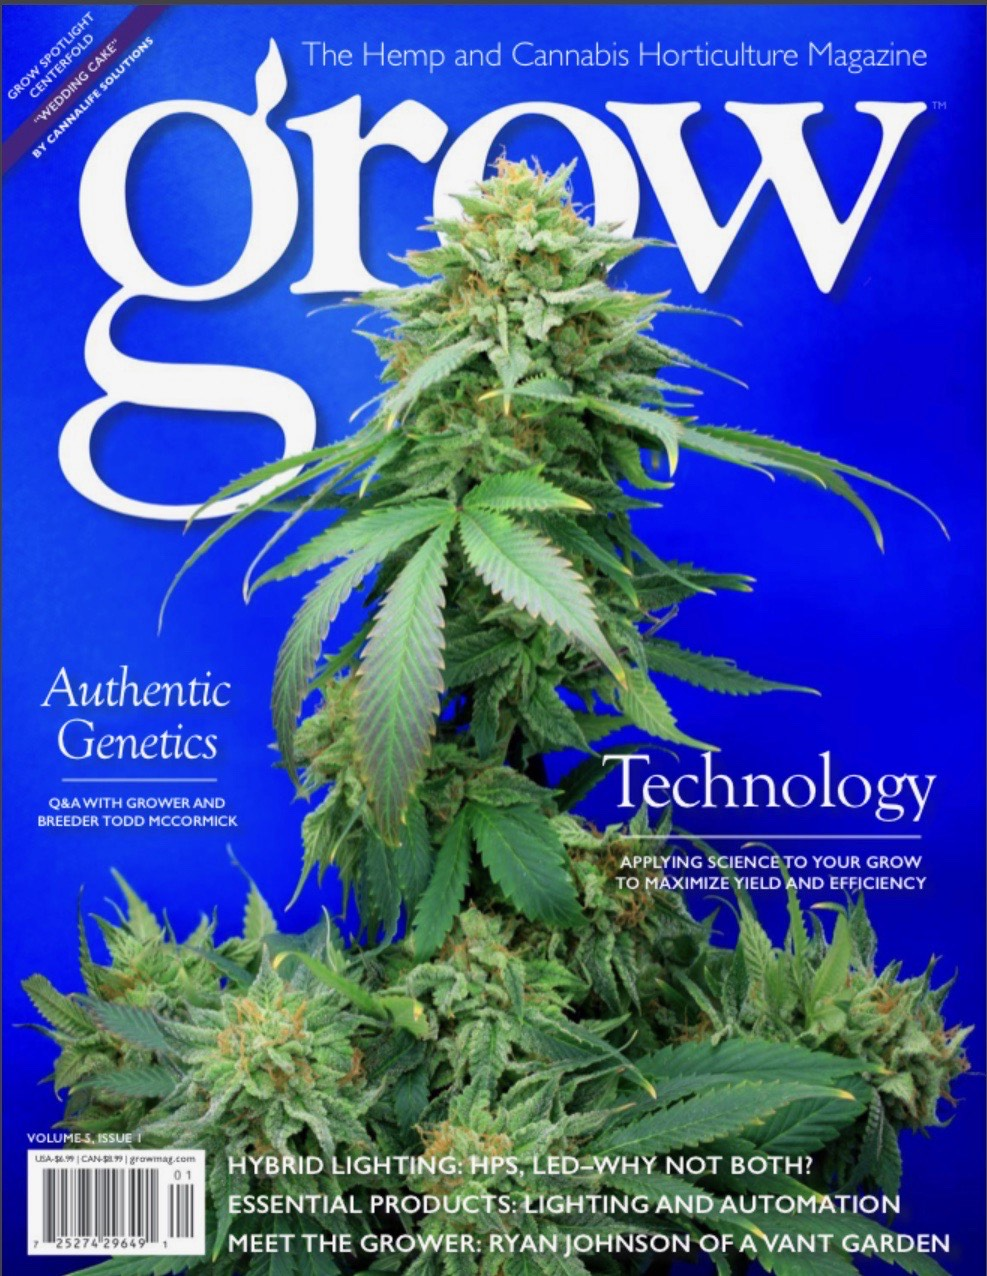 Grow_magazine_copperstate_farms